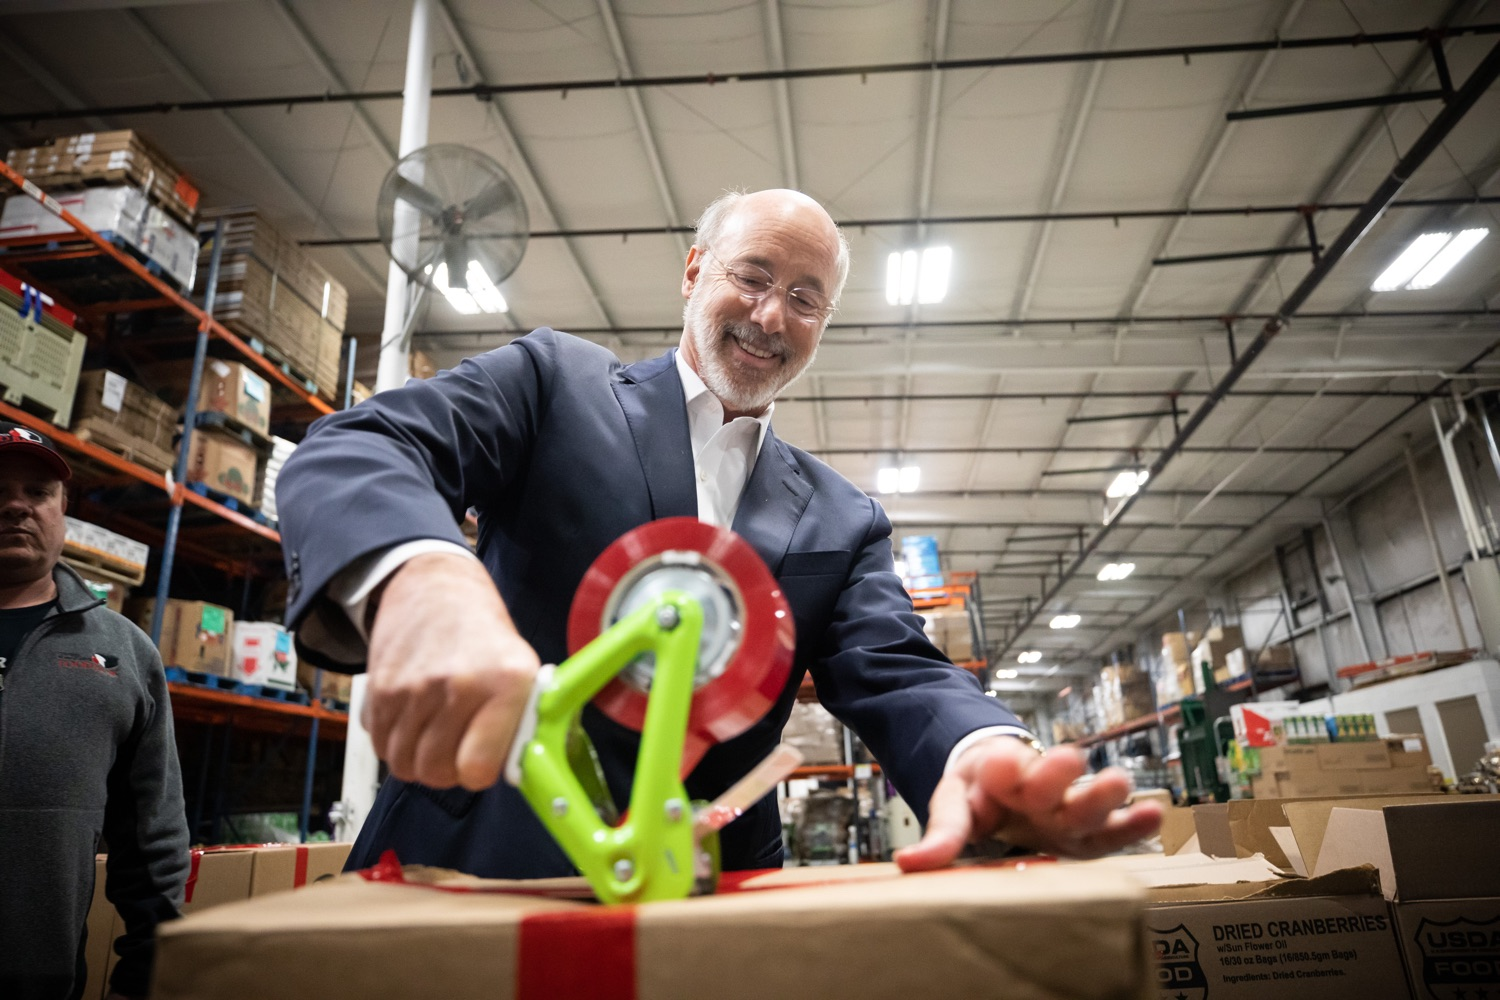 "<a href=""https://filesource.wostreaming.net/commonwealthofpa/photo/17632_gov_foodbank_volunteering_dz_002.jpg"" target=""_blank"">⇣ Download Photo<br></a>Governor Tom Wolf loading boxes of food at the Central Pennsylvania Food Bank.  The governor and first lady visit the Central Pennsylvania Food Bank in Harrisburg to participate in a volunteer project, packing boxes of food for veterans and their families. Ahead of Thanksgiving and the holiday season, Governor Tom Wolf and First Lady Frances Wolf are reminding Pennsylvanians of the importance of helping each other. Harrisburg, PA  Tuesday November 26, 2019"